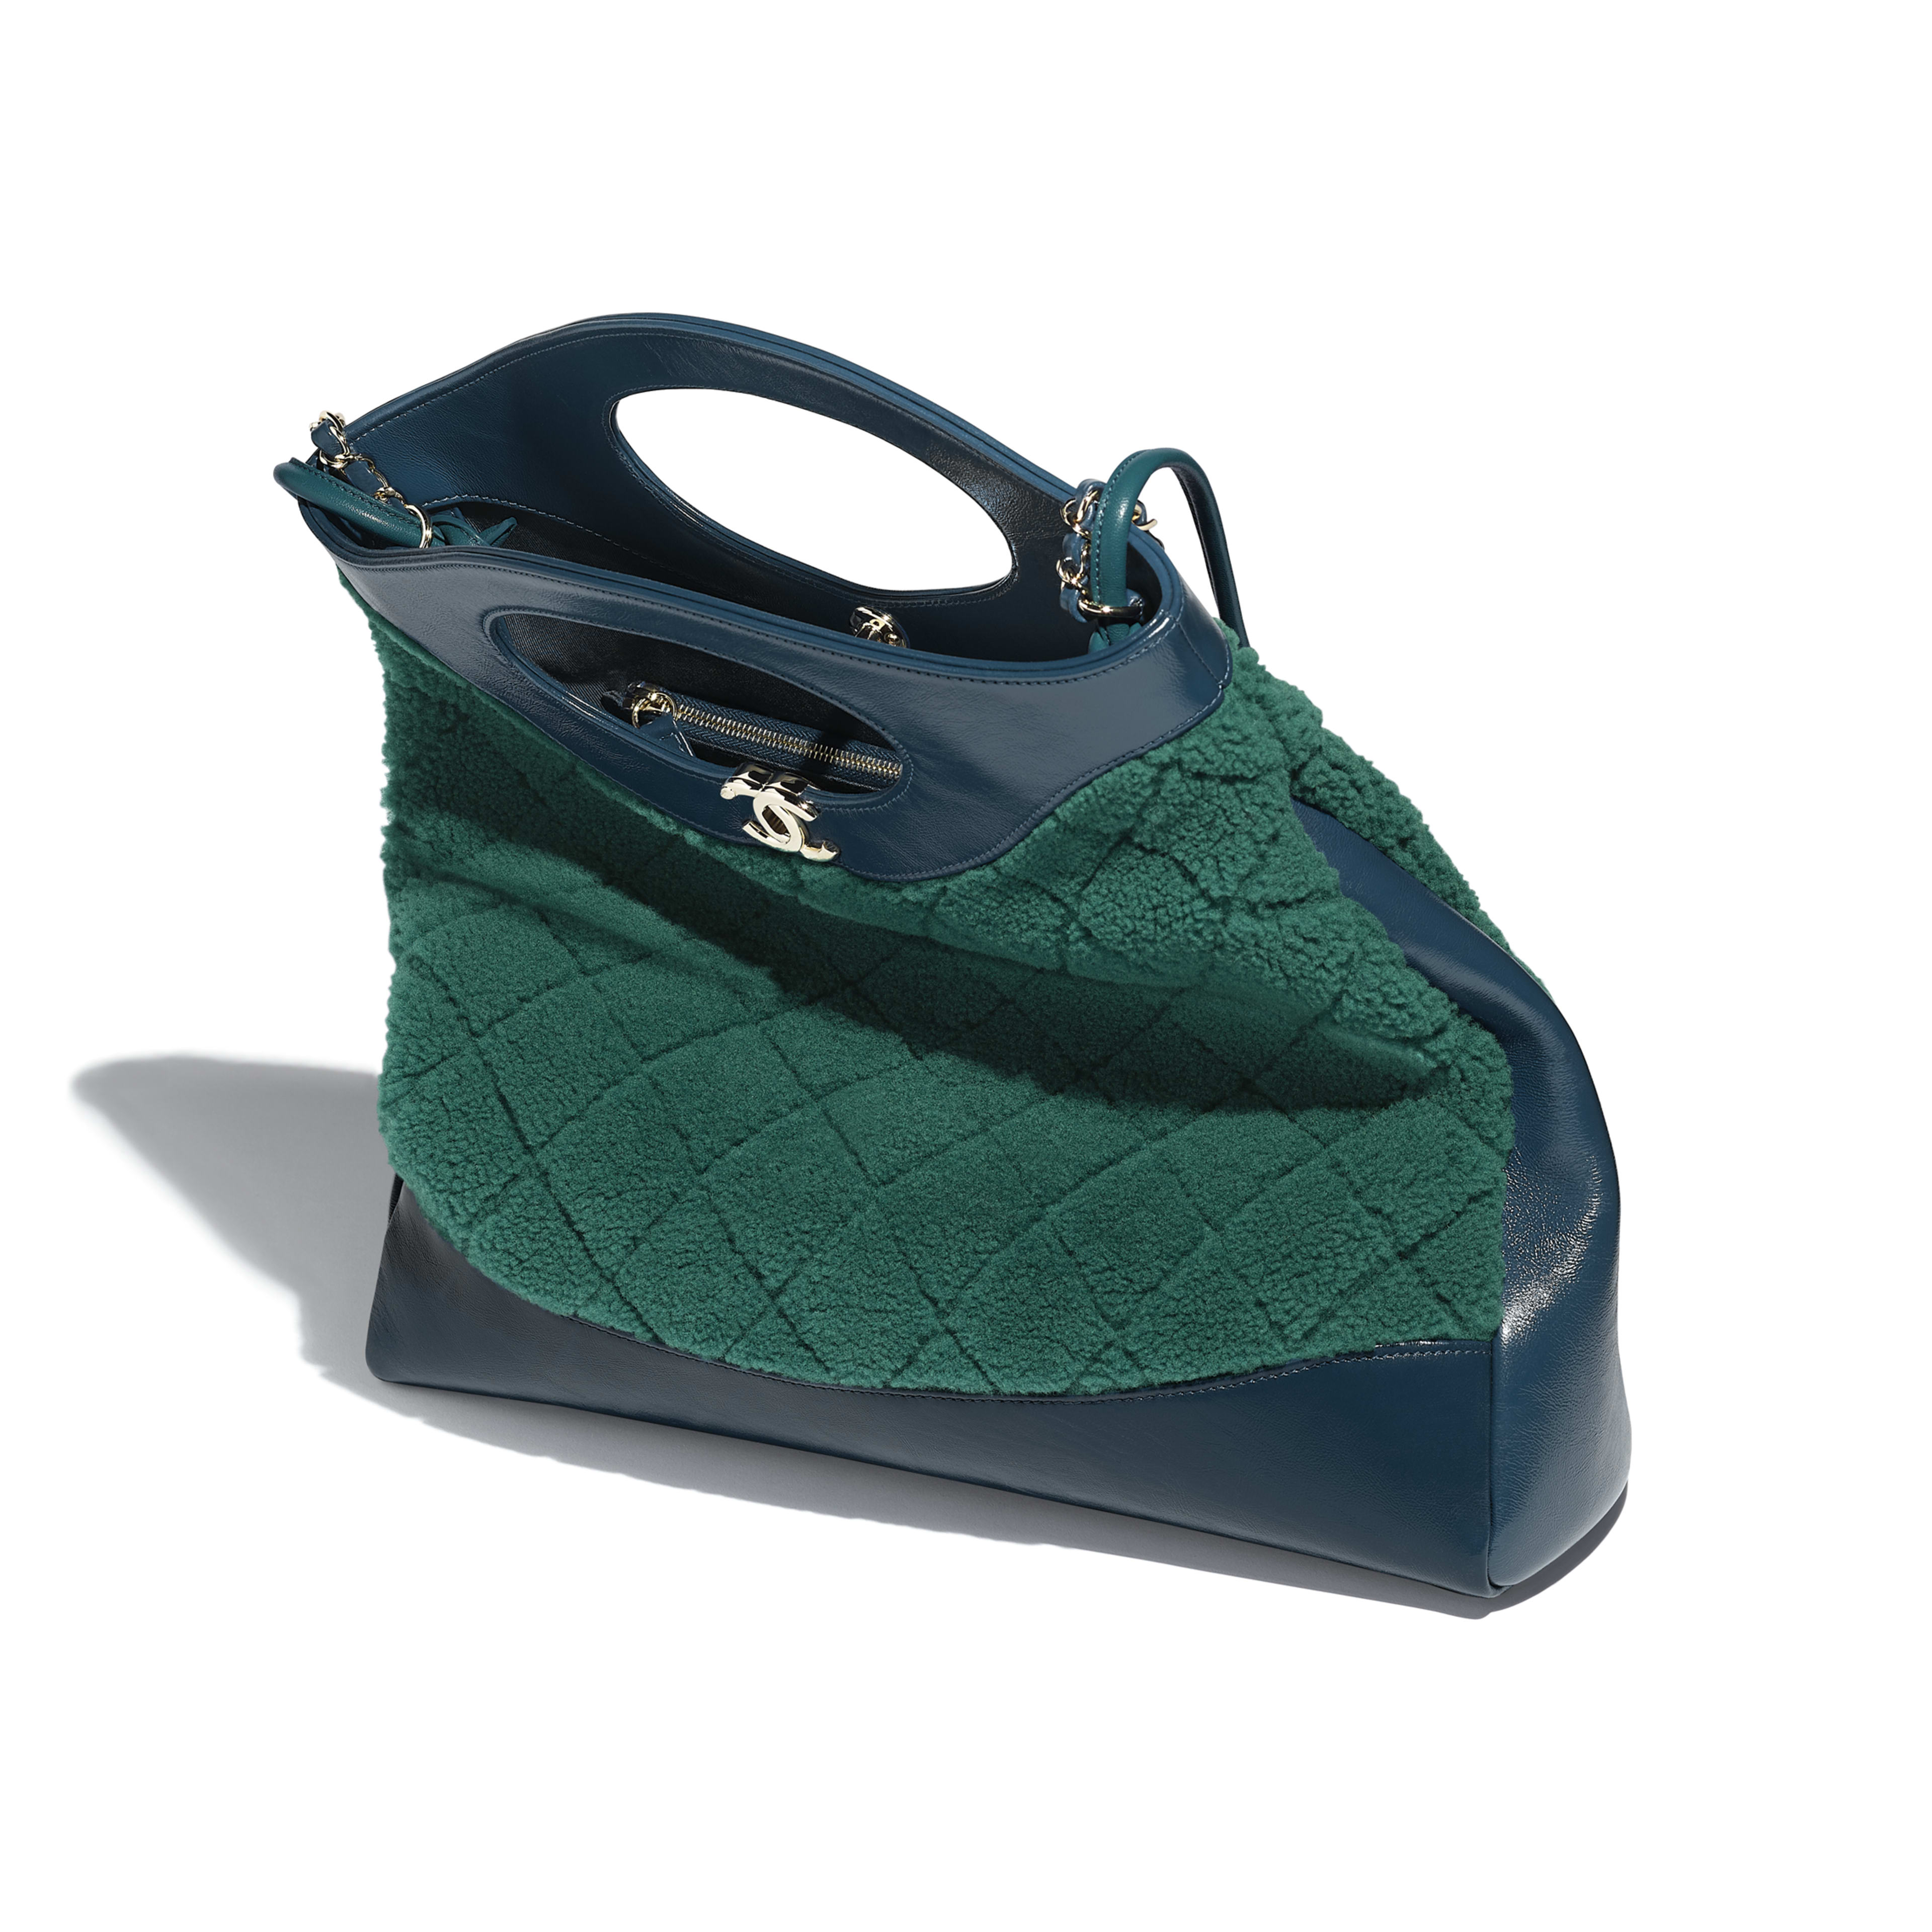 CHANEL 31 Shopping Bag - Green & Blue - Shearling Sheepskin, Calfskin & Gold-Tone Metal - Other view - see full sized version